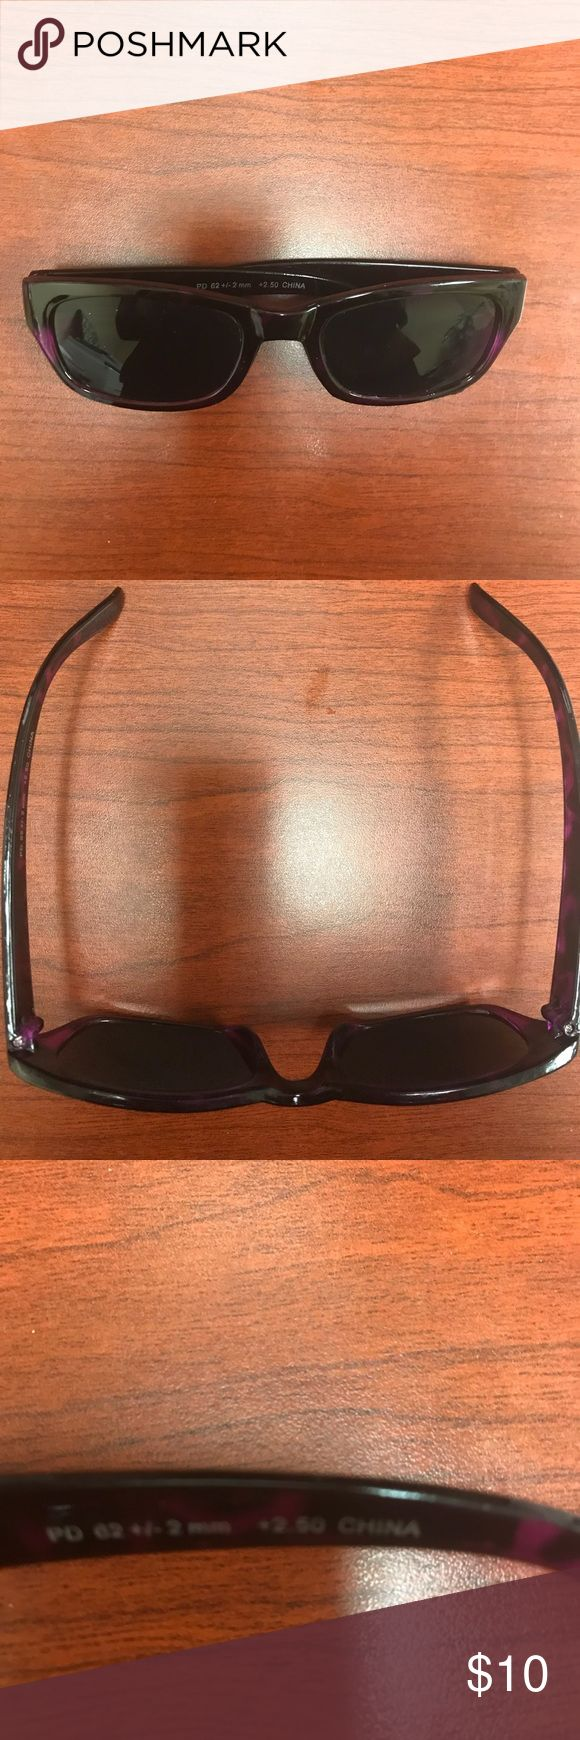 NEW * Reader/RX Sunglasses from Catherine's, NEW! NEW * Reader/RX Sunglasses from Catherine's, NEW! Color: Black/Plum. Reader 2.5 sight strength. Bought & never worn ~ Absolutely PERFECT! Catherines Accessories Sunglasses